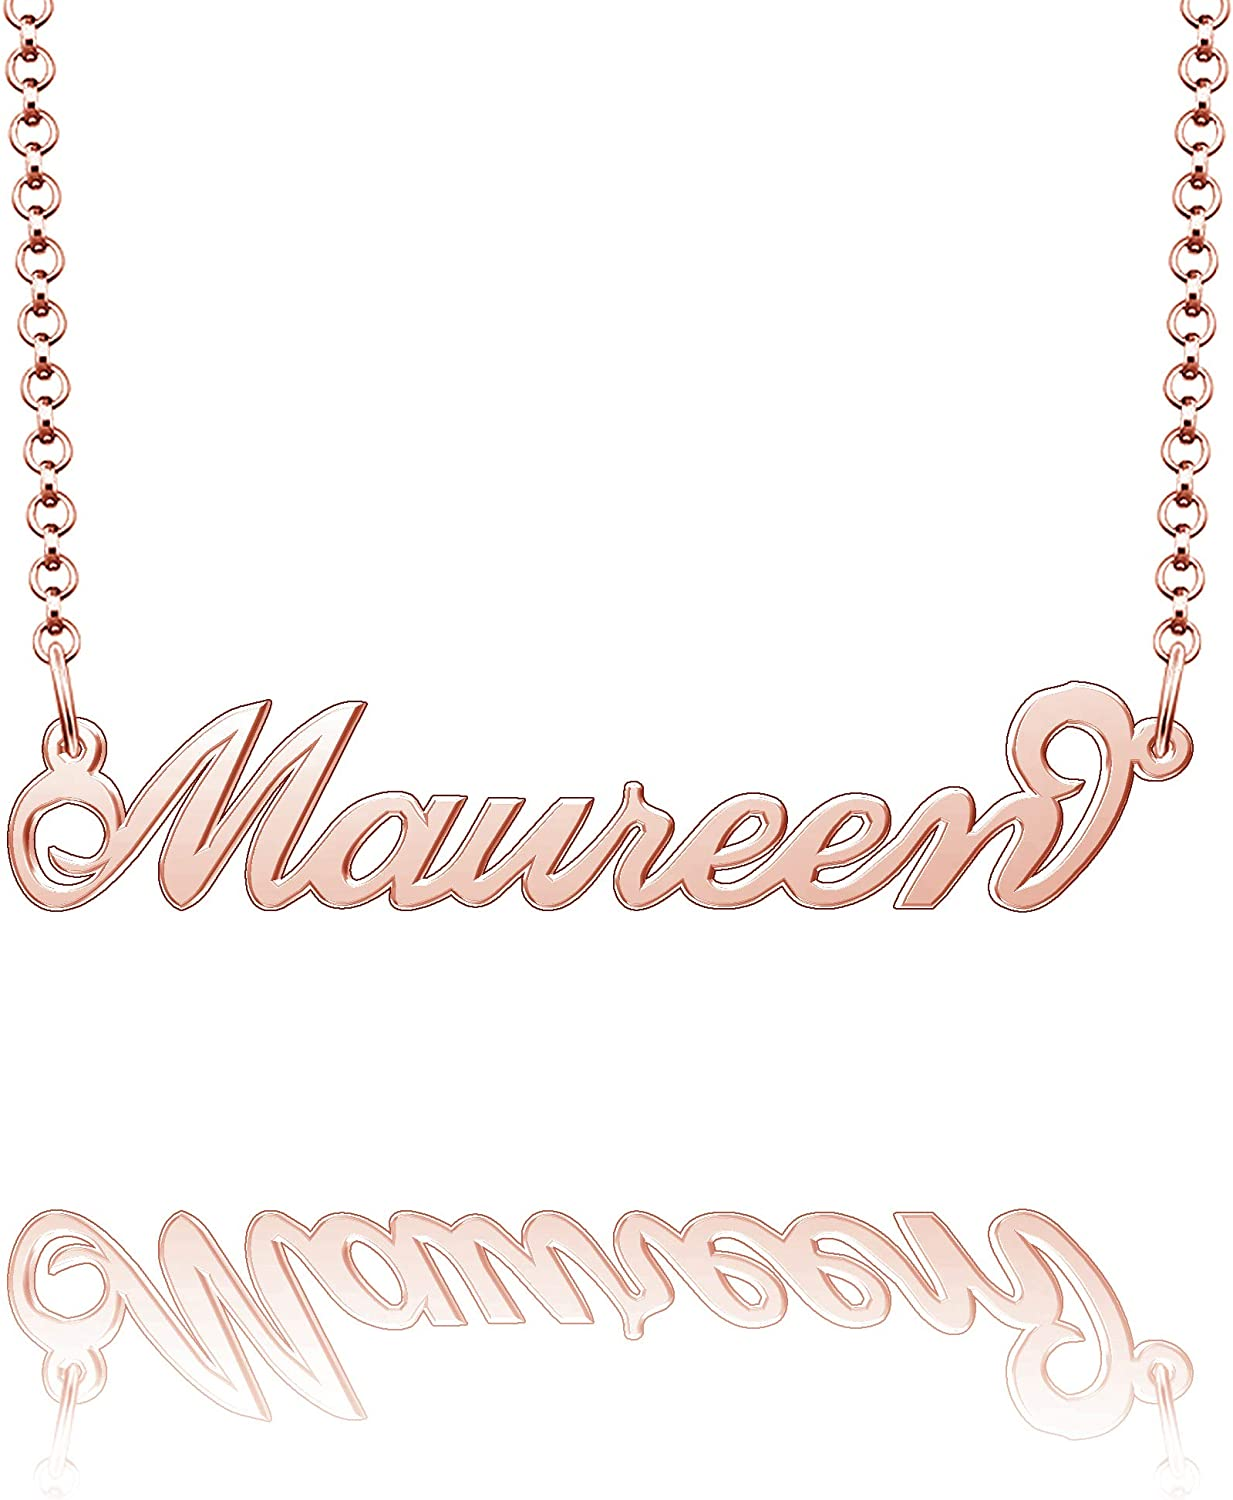 Moonlight Collections Custom Name Necklace Handmade Sterling Silver Necklace Maureen